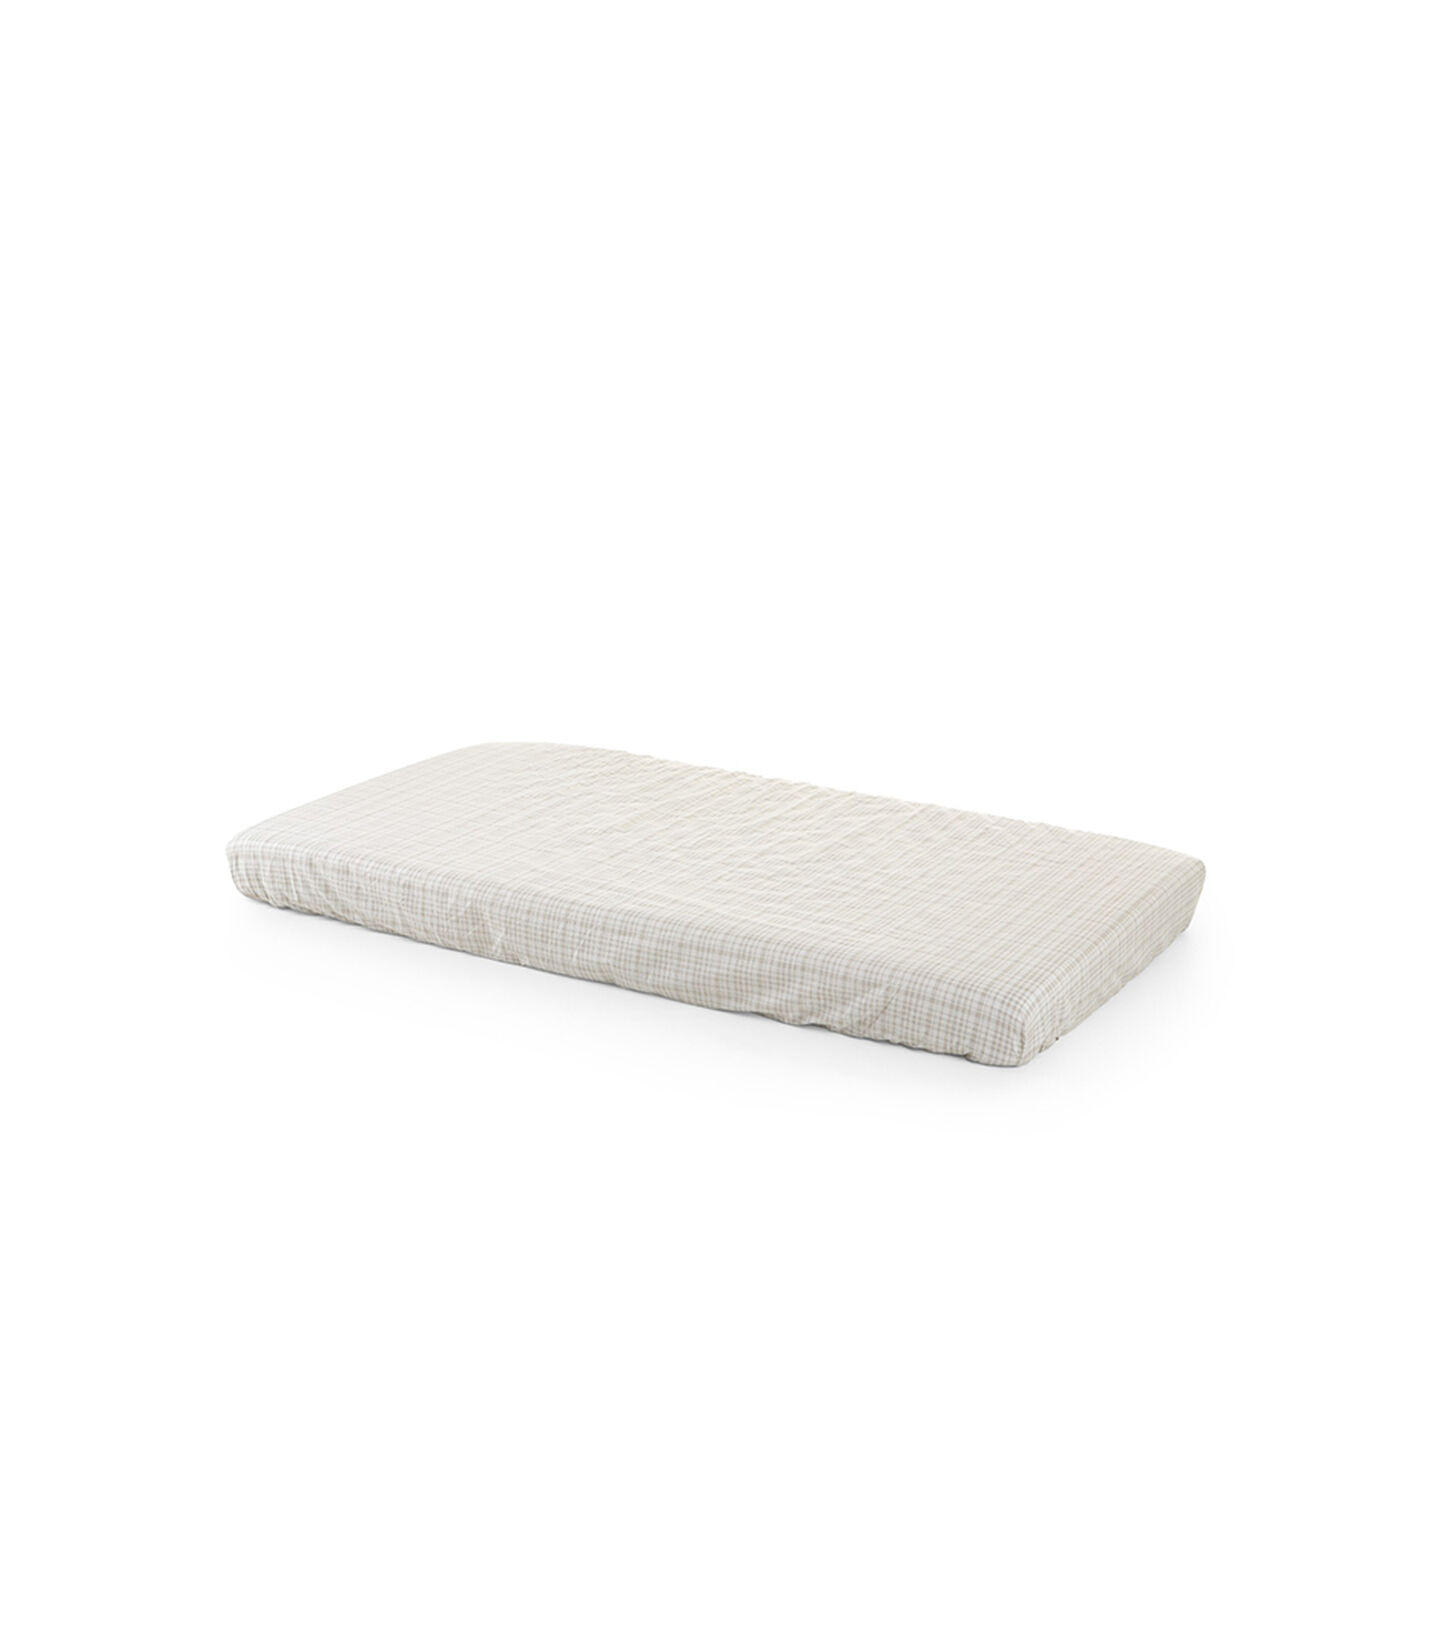 Stokke® Home™ Fitted Sheet. Beige Check.